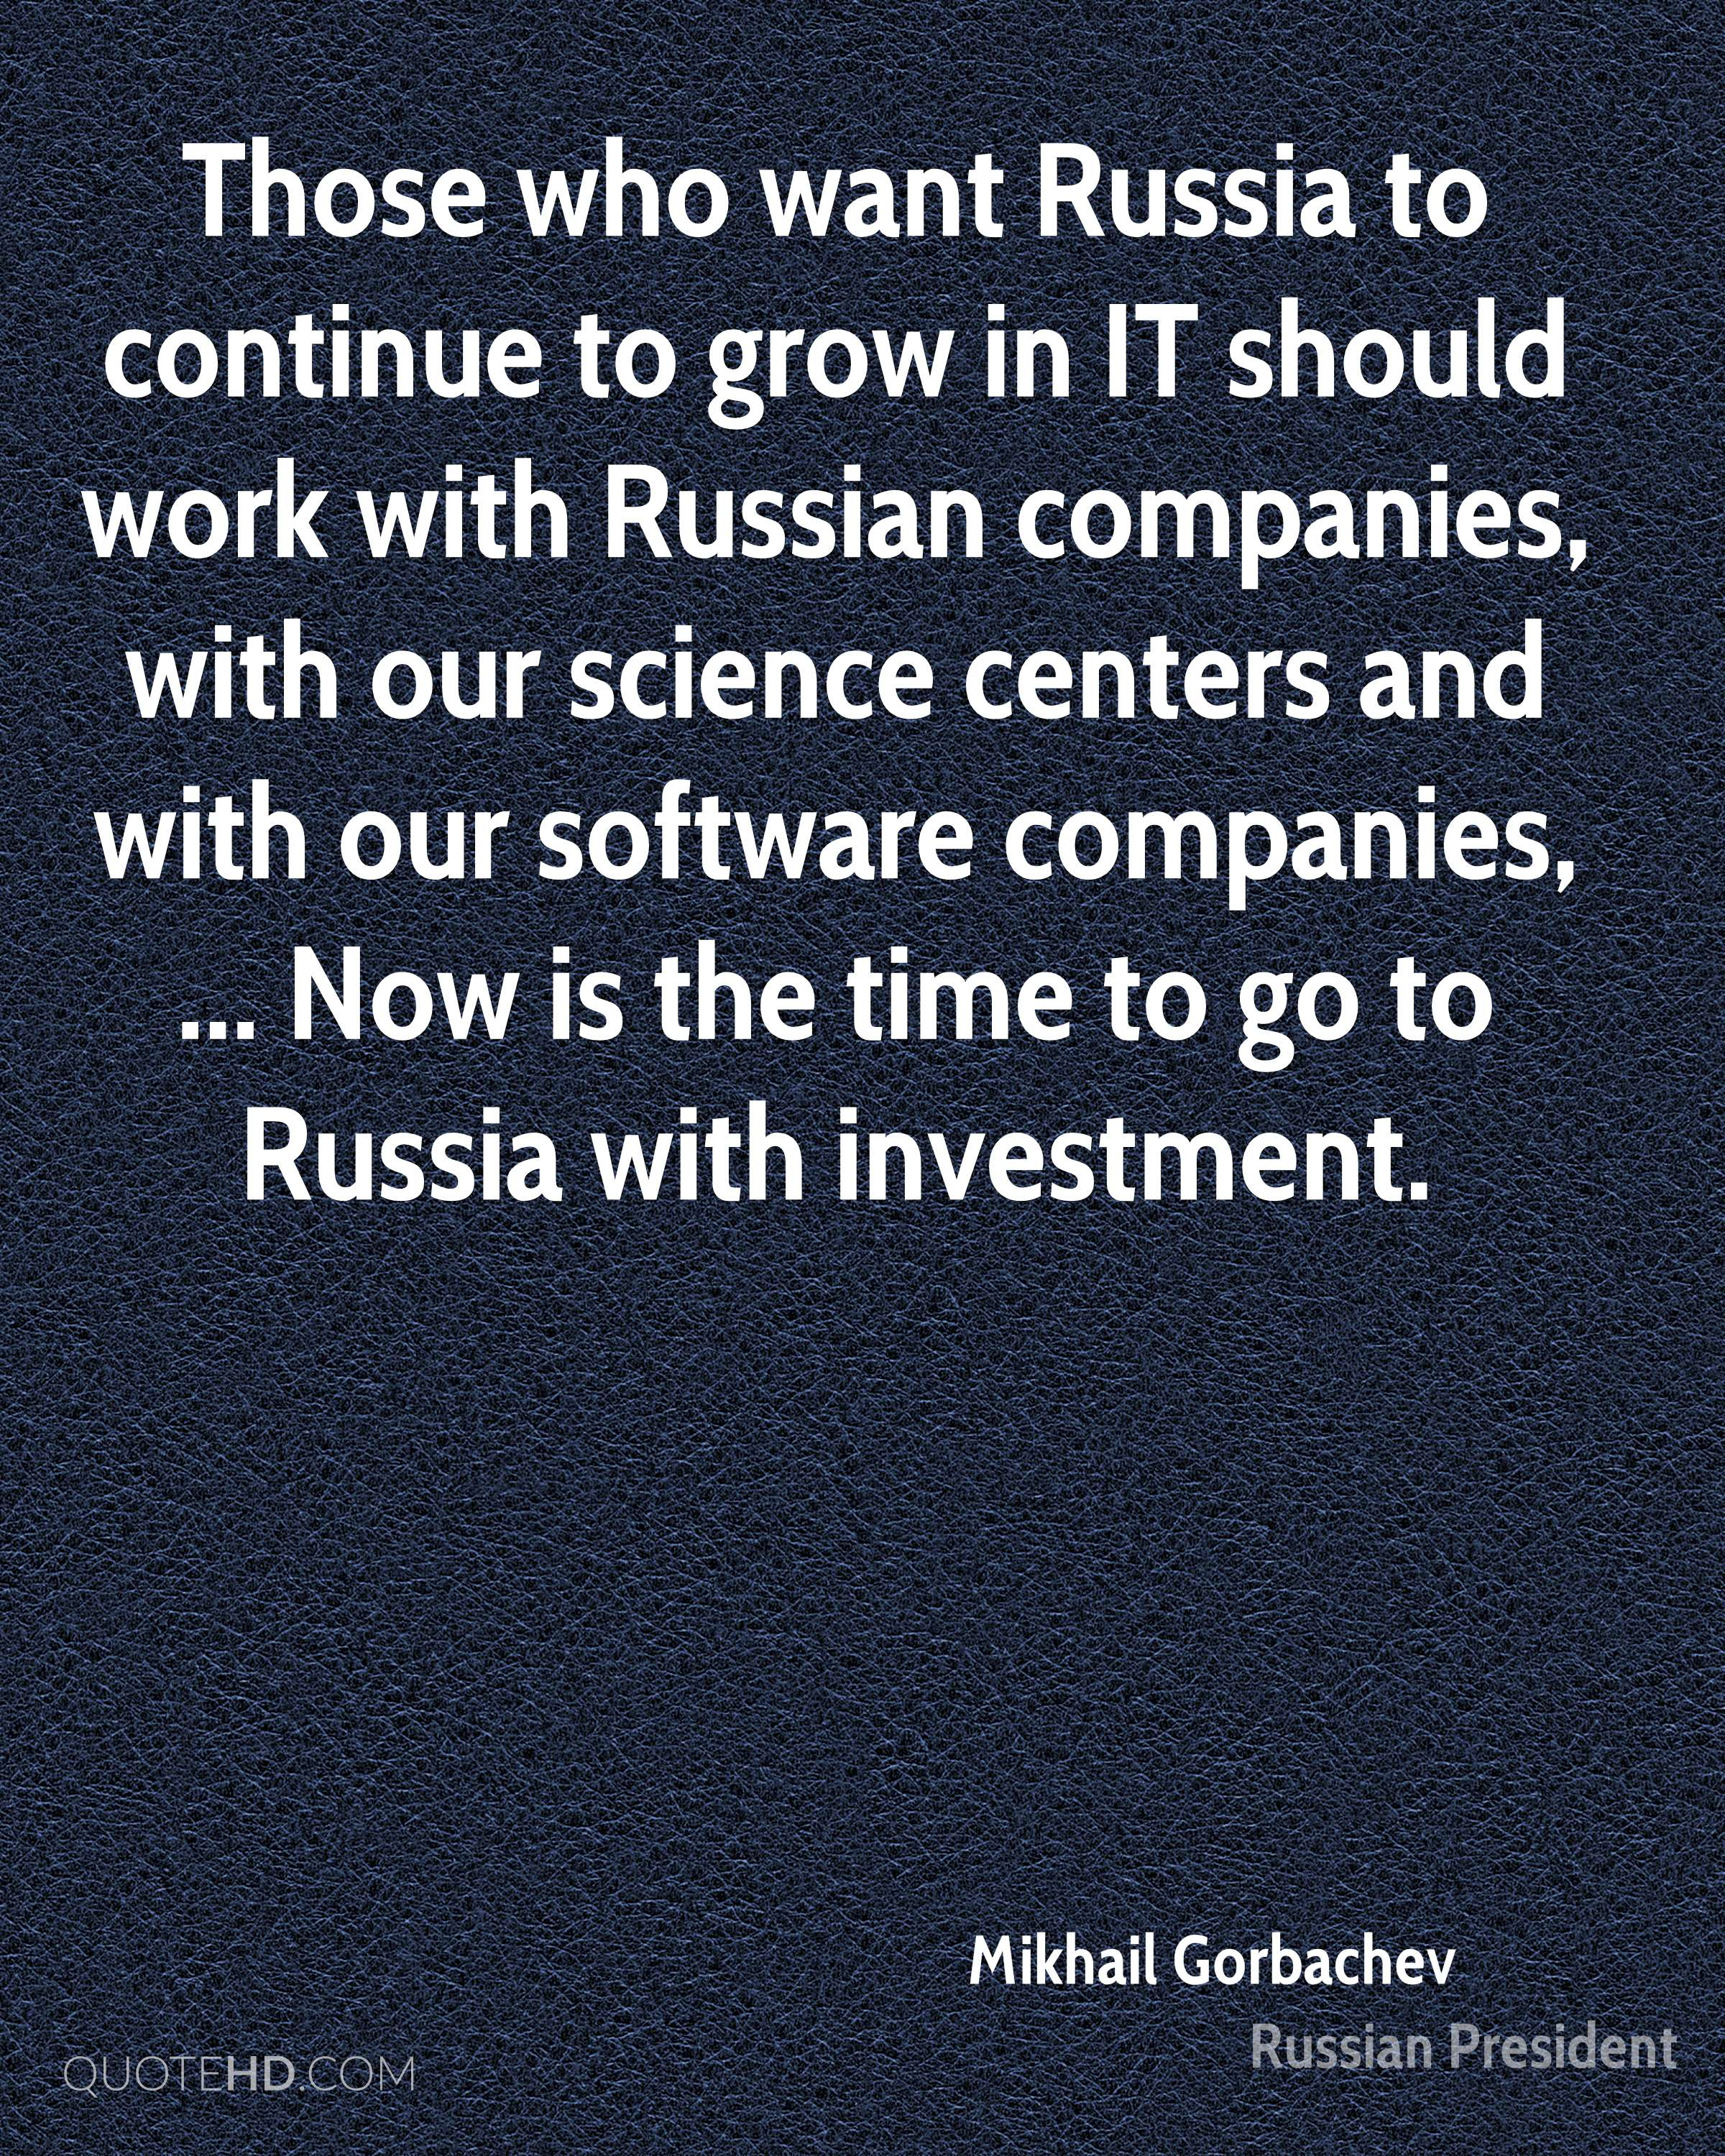 Those who want Russia to continue to grow in IT should work with Russian companies, with our science centers and with our software companies, ... Now is the time to go to Russia with investment.